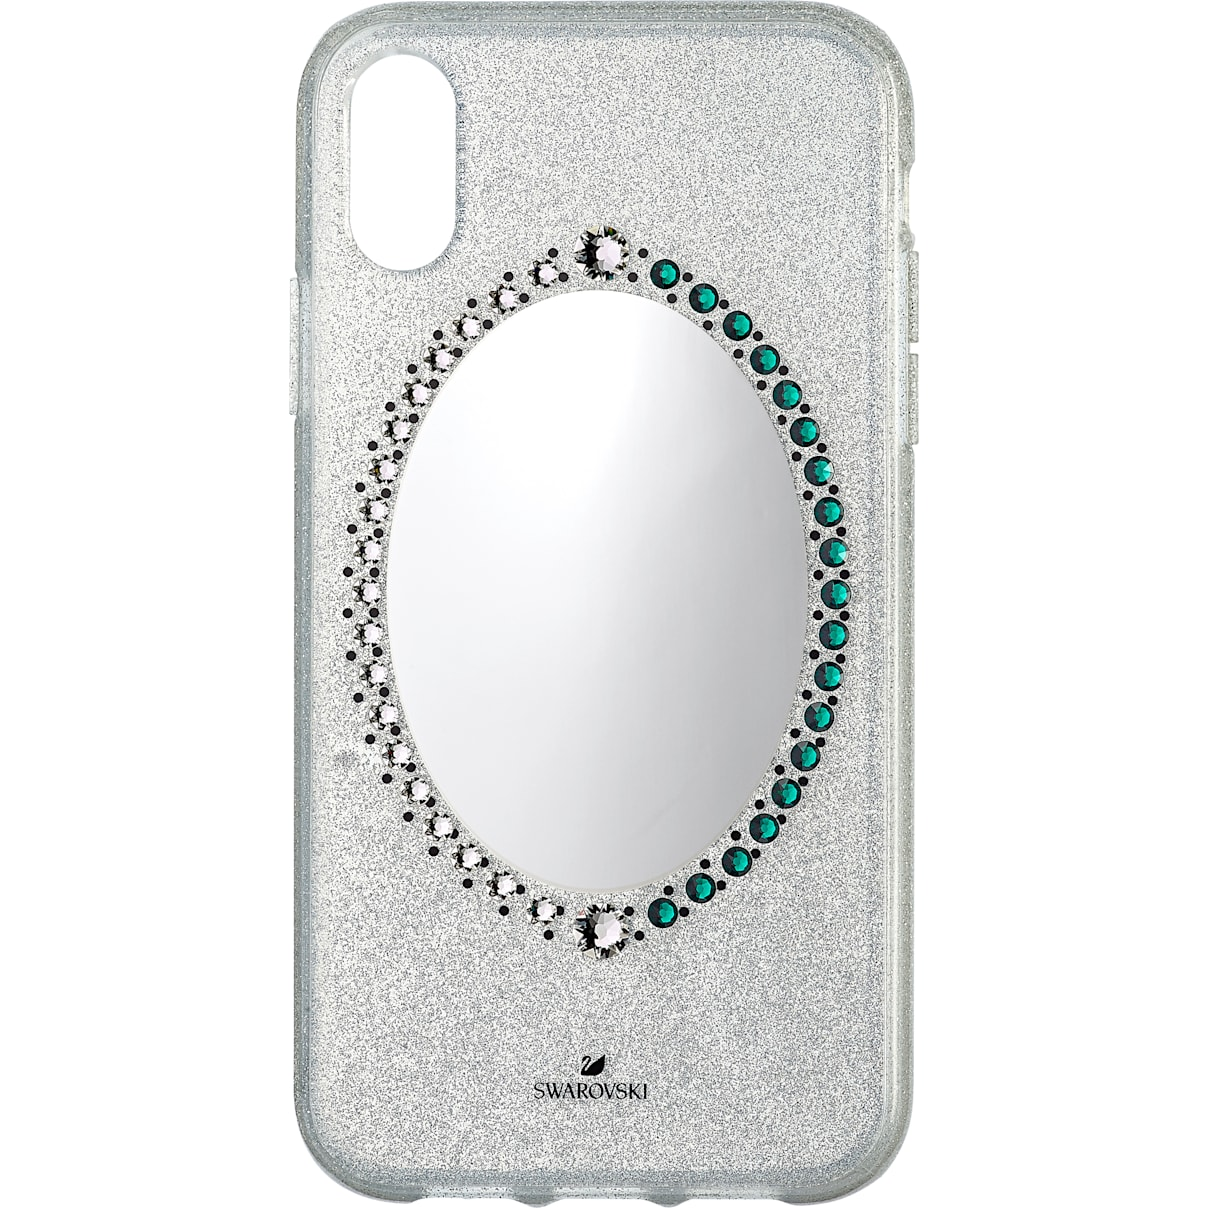 Swarovski Black Baroque Smartphone Case, iPhone® XR, Gray